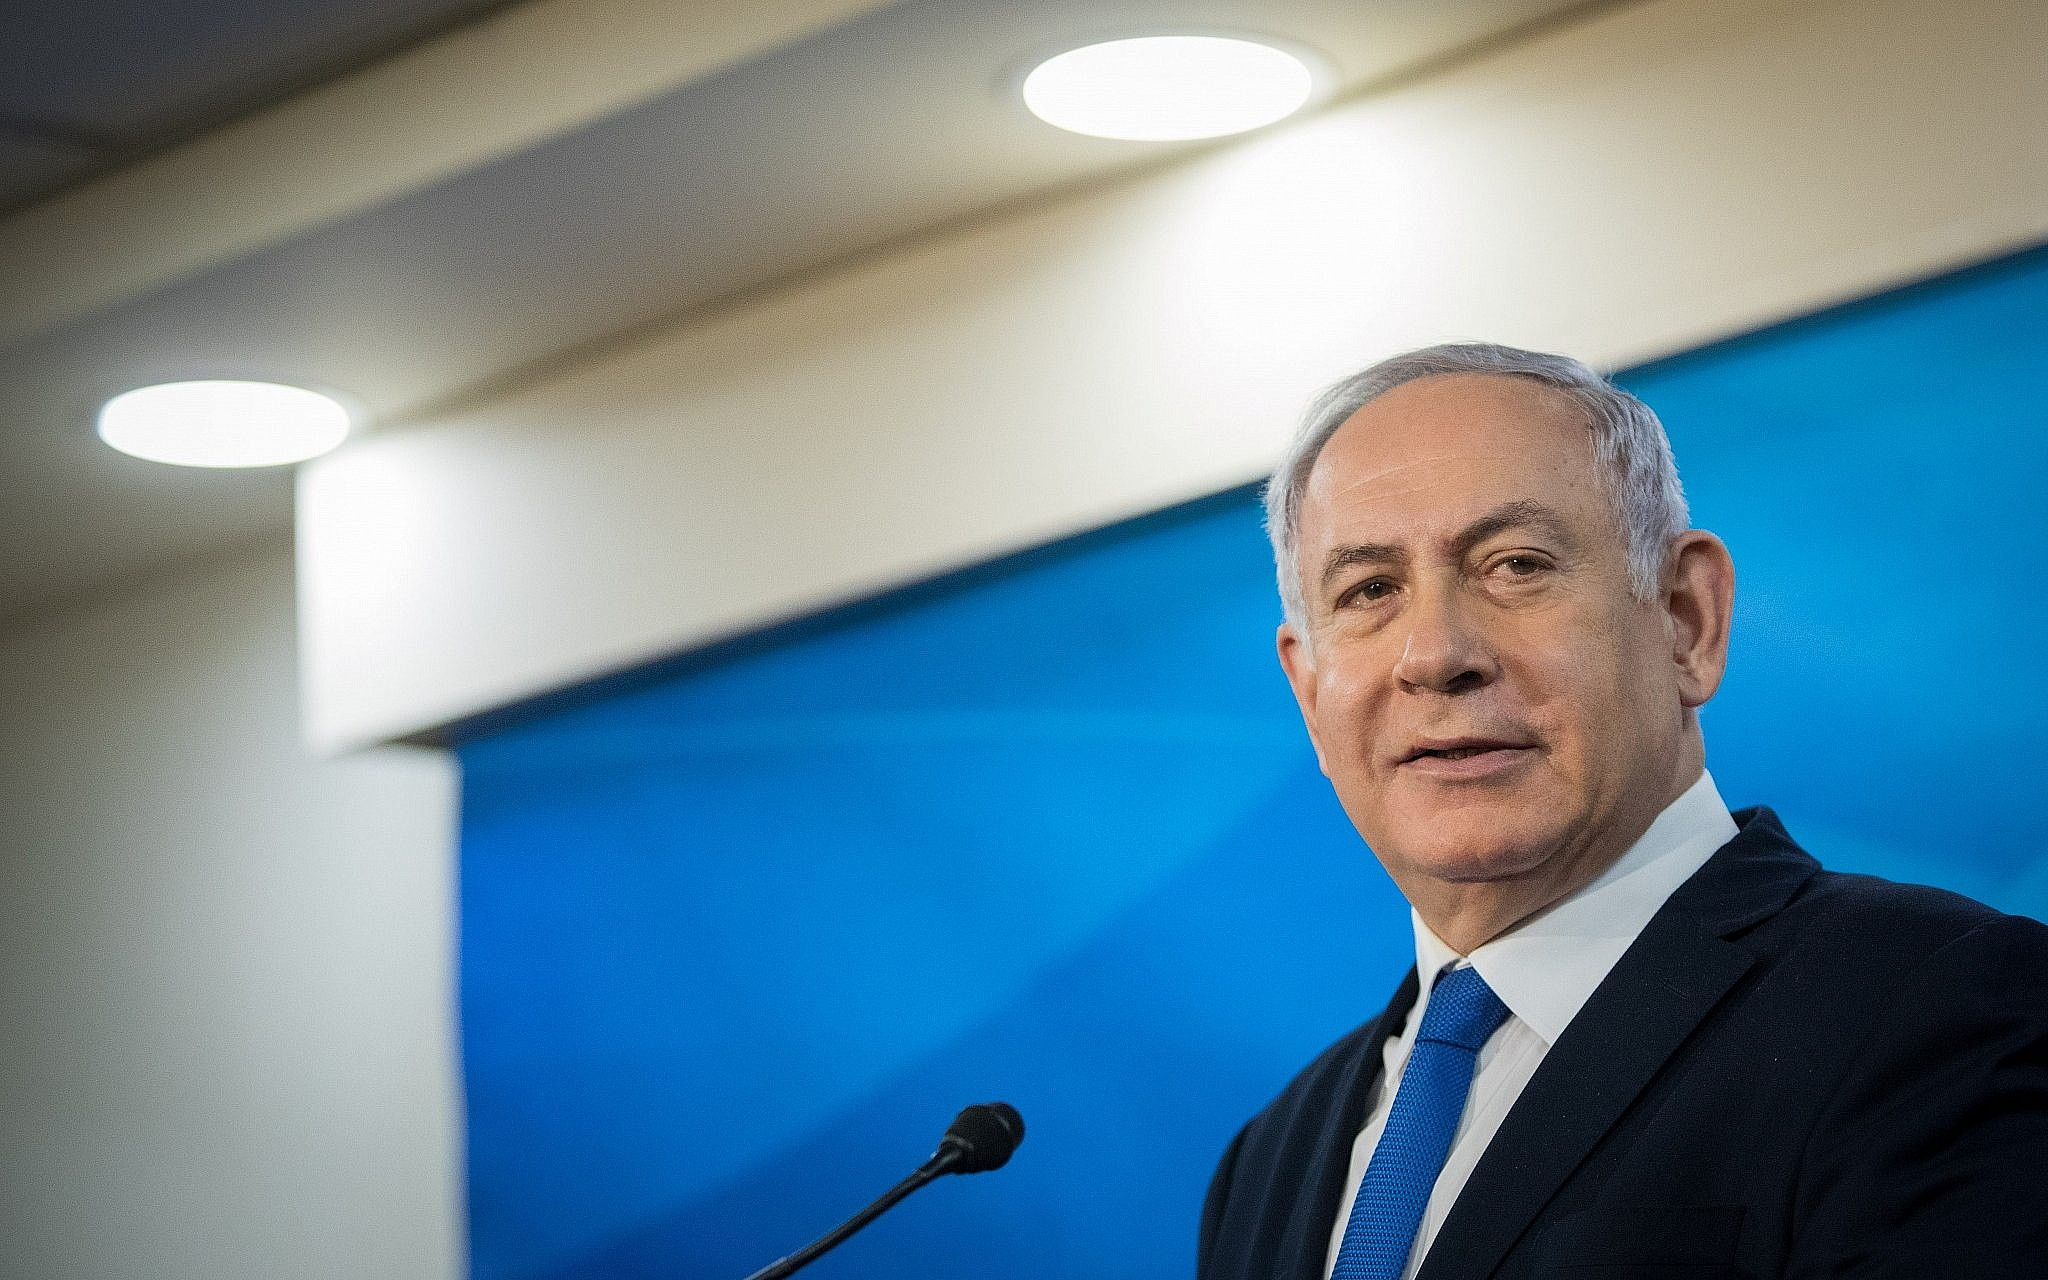 Israel elections: Netanyahu challengers Gantz and Lapid join forces